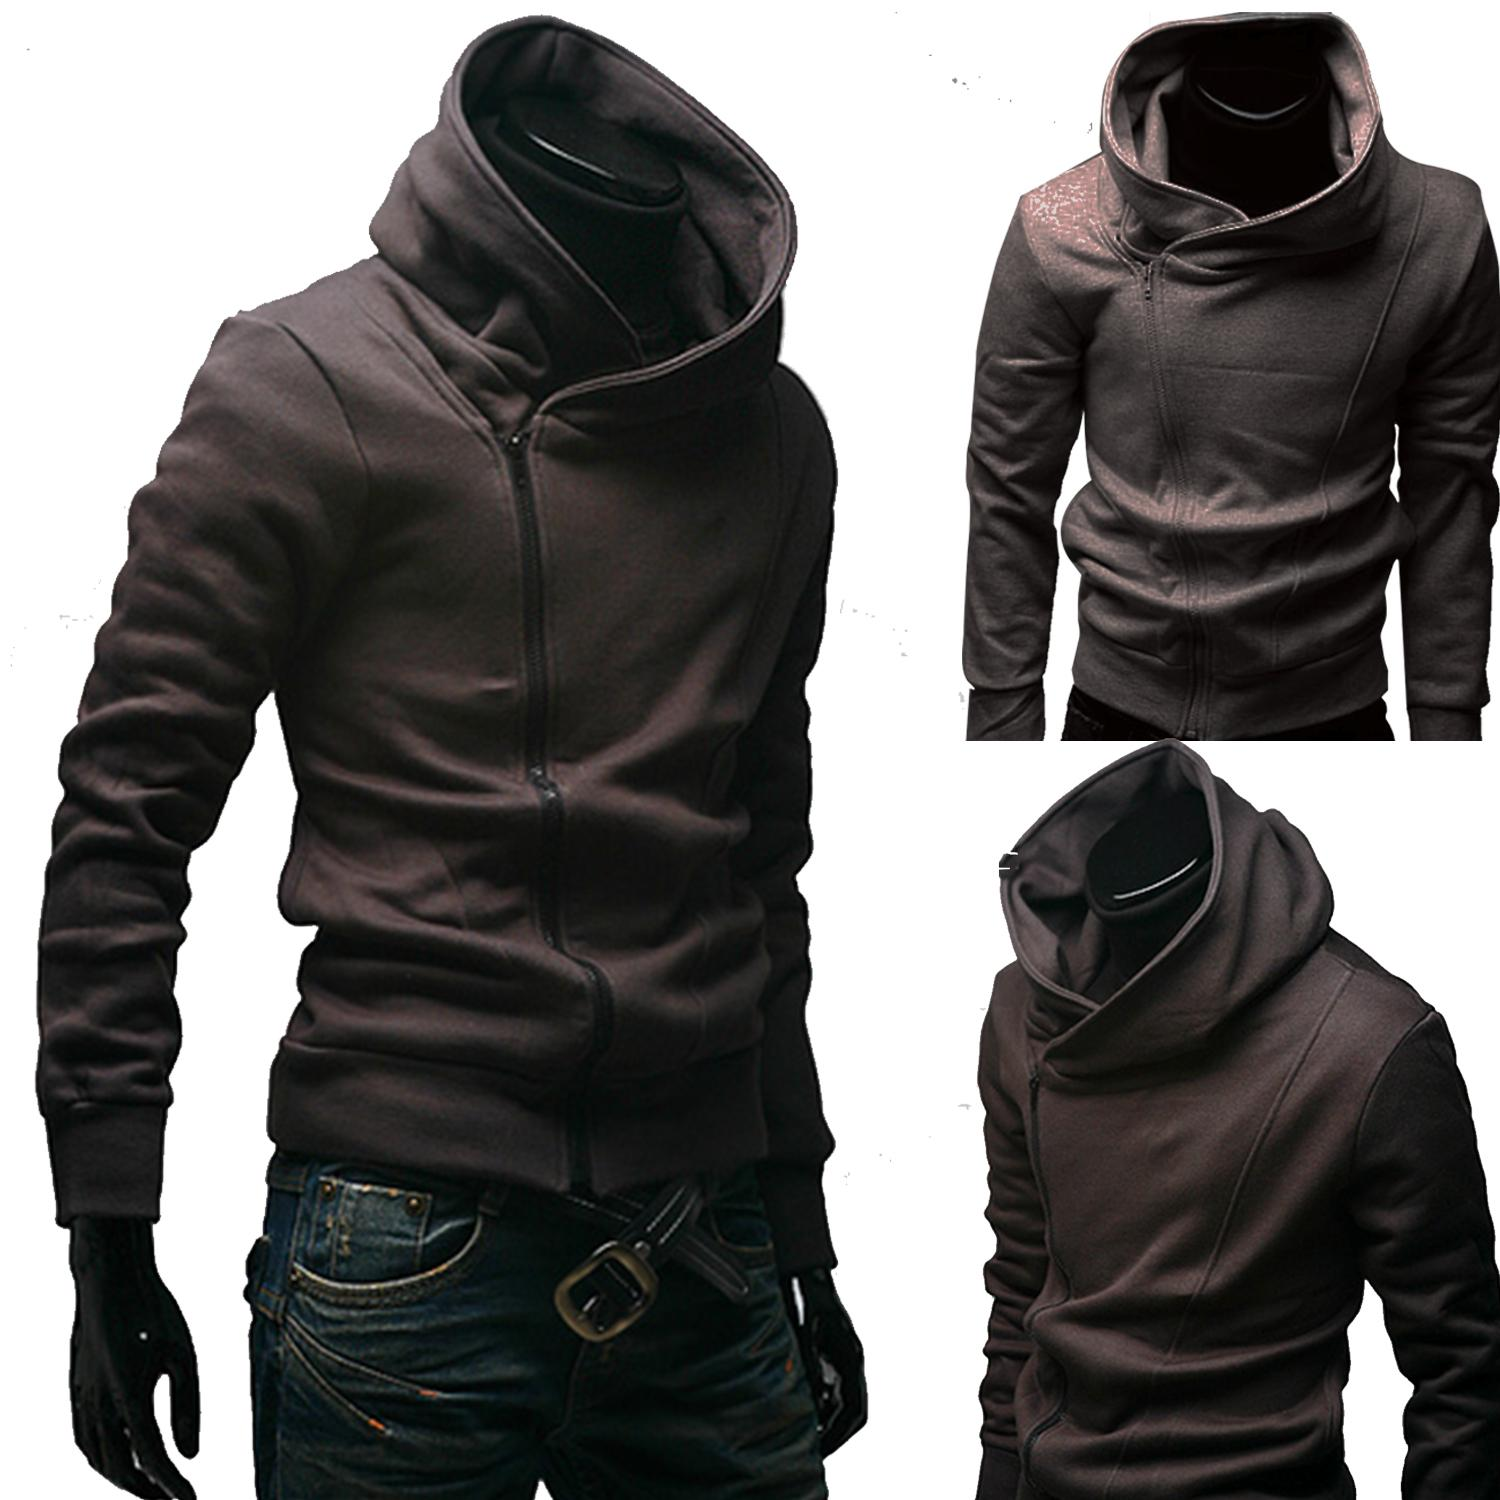 Slim Fit Hooded Jacket Slim Fit Zipped Jacket Zip Hooded Jacket Men Zipped  Jacket Zip Up 69da63225bf